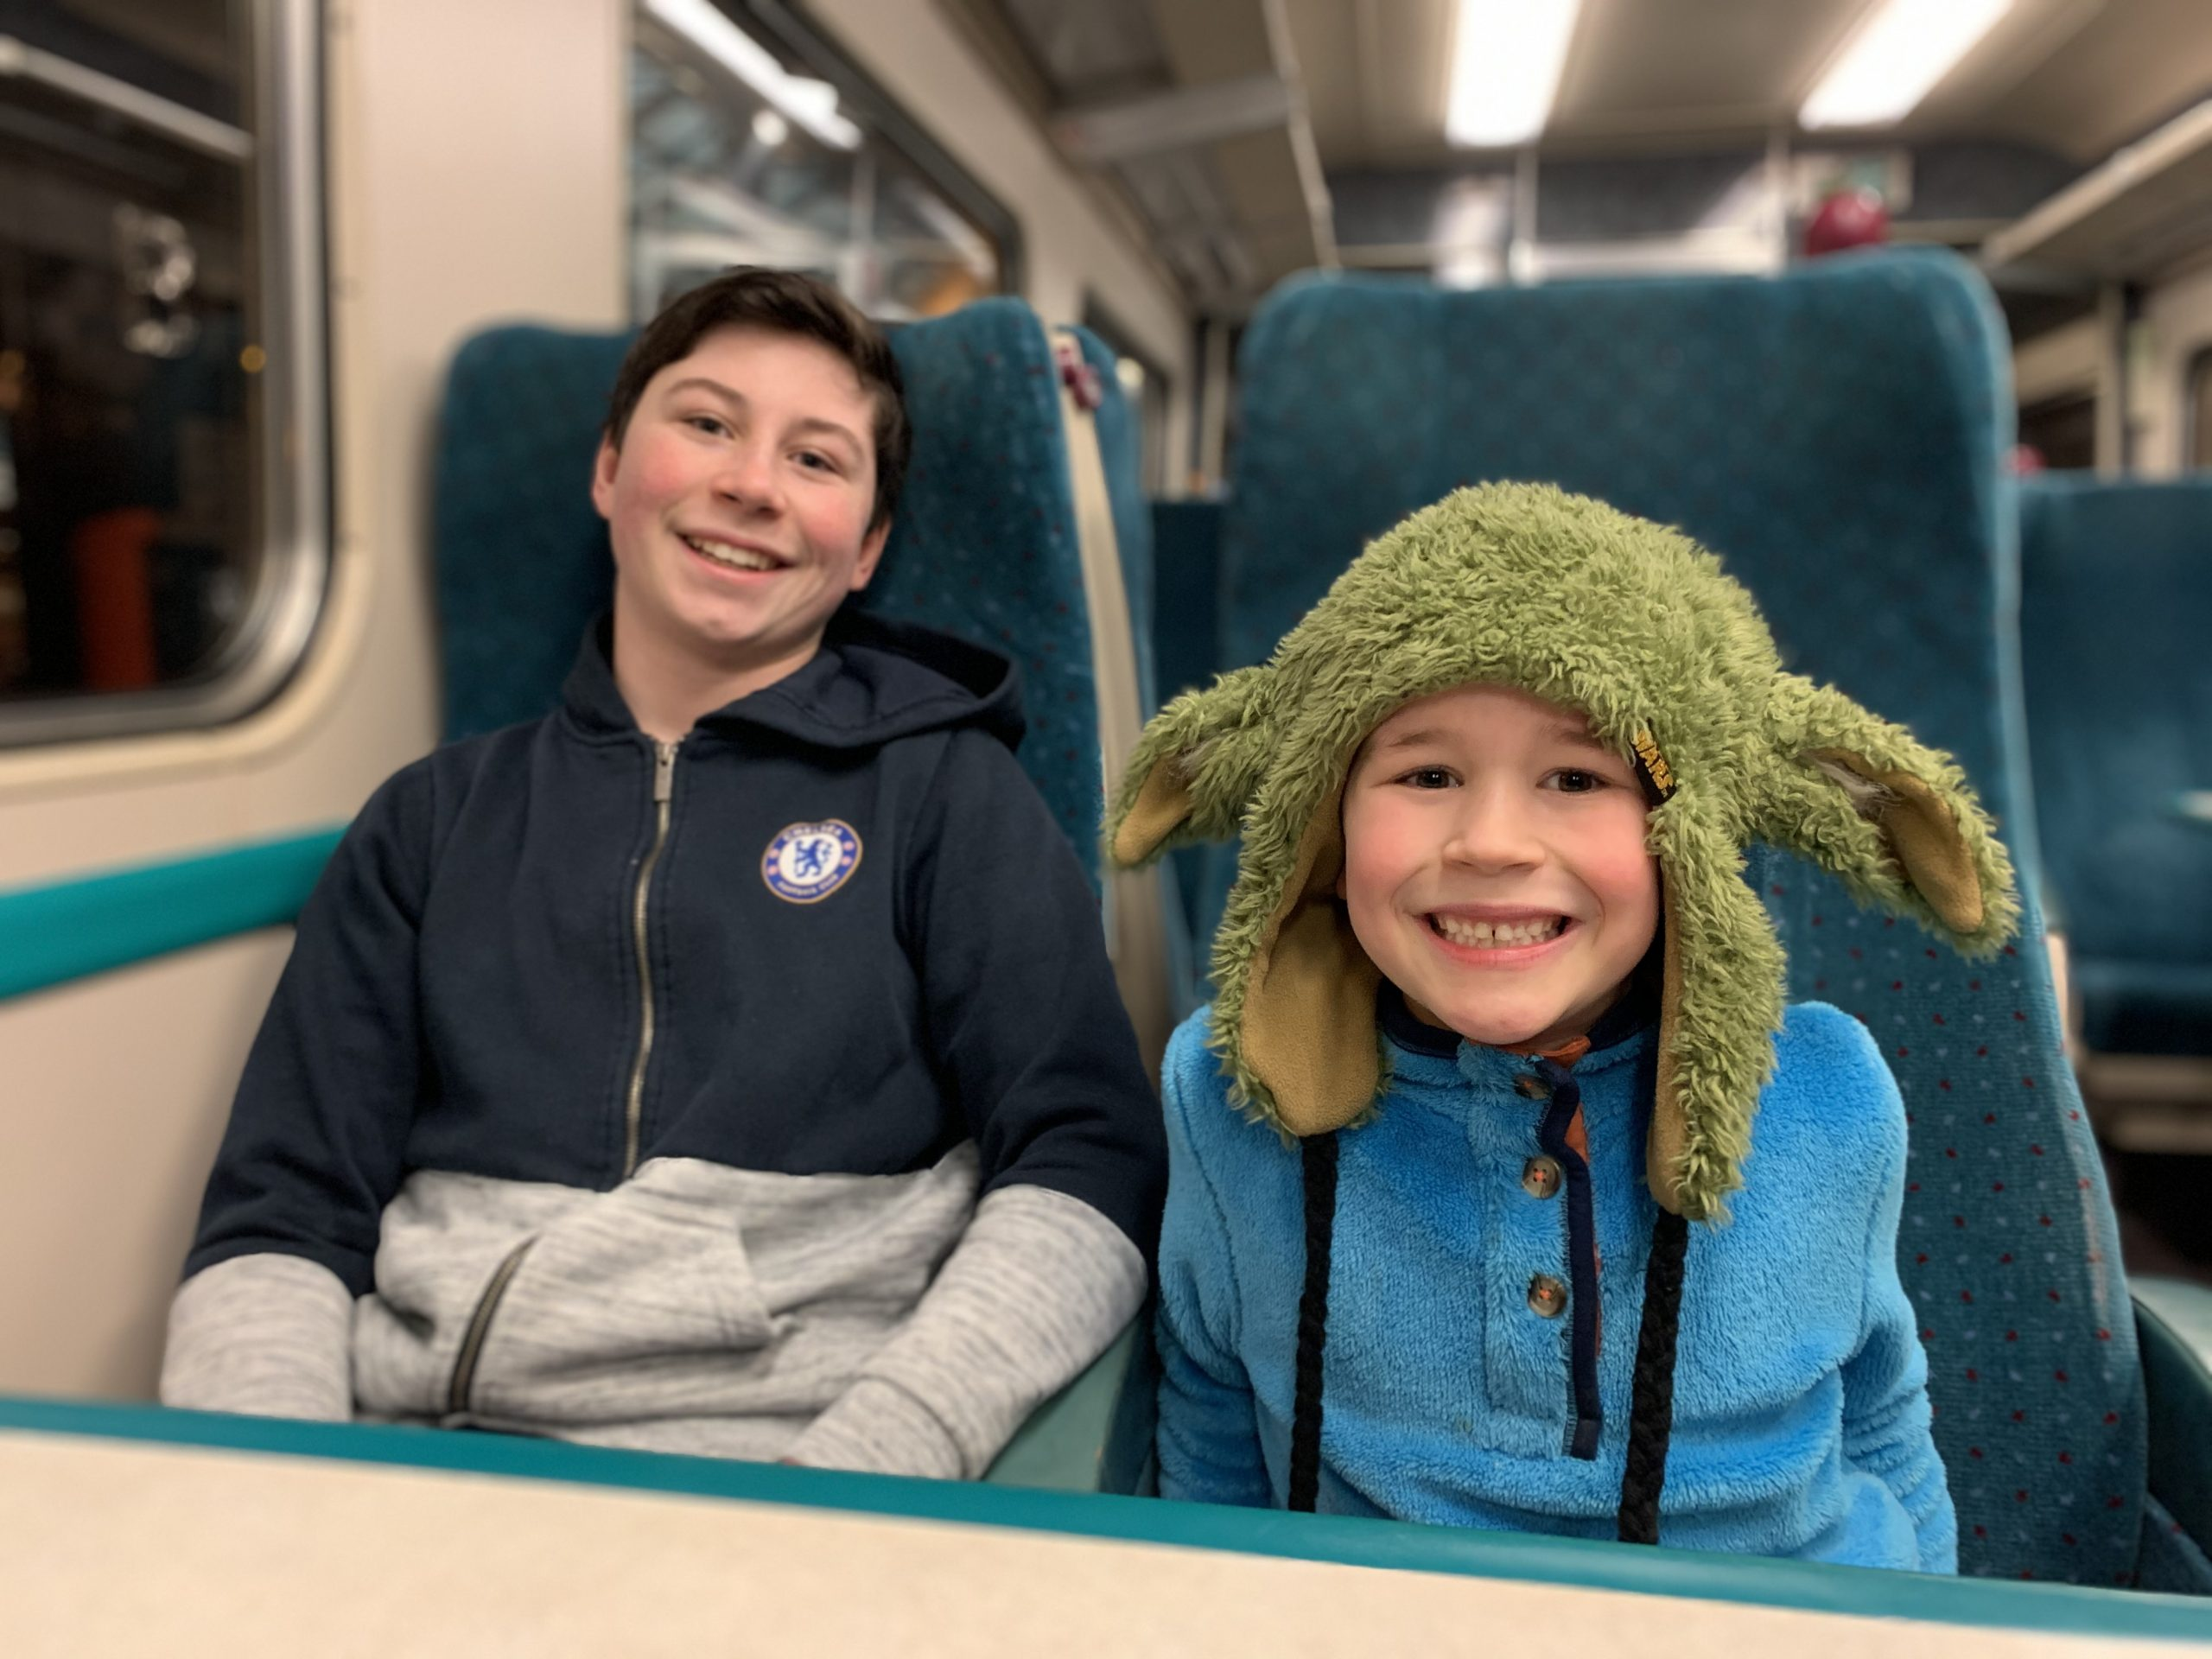 two boys sat in a train carriage posing for a photo